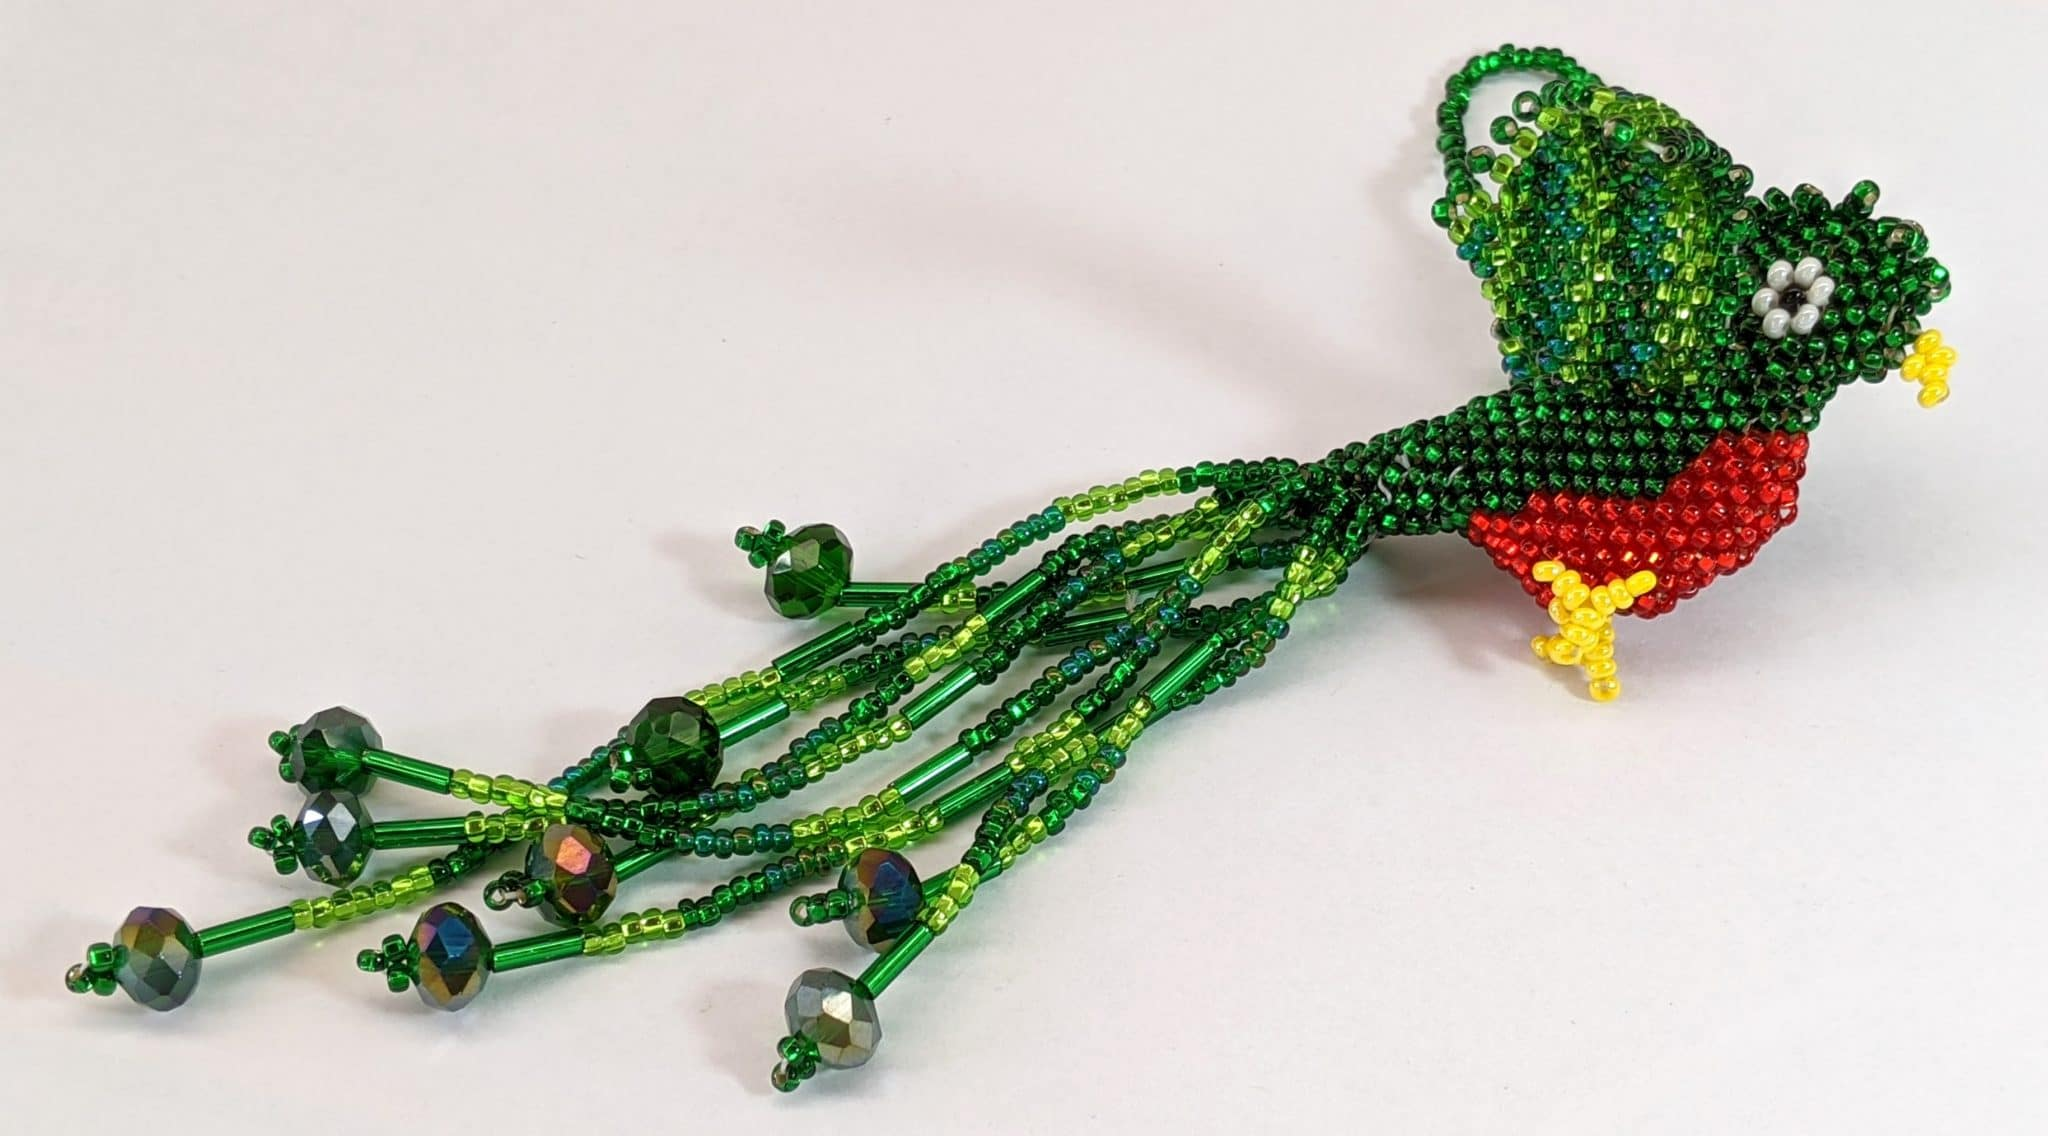 Quetzal Beaded Ornament #4